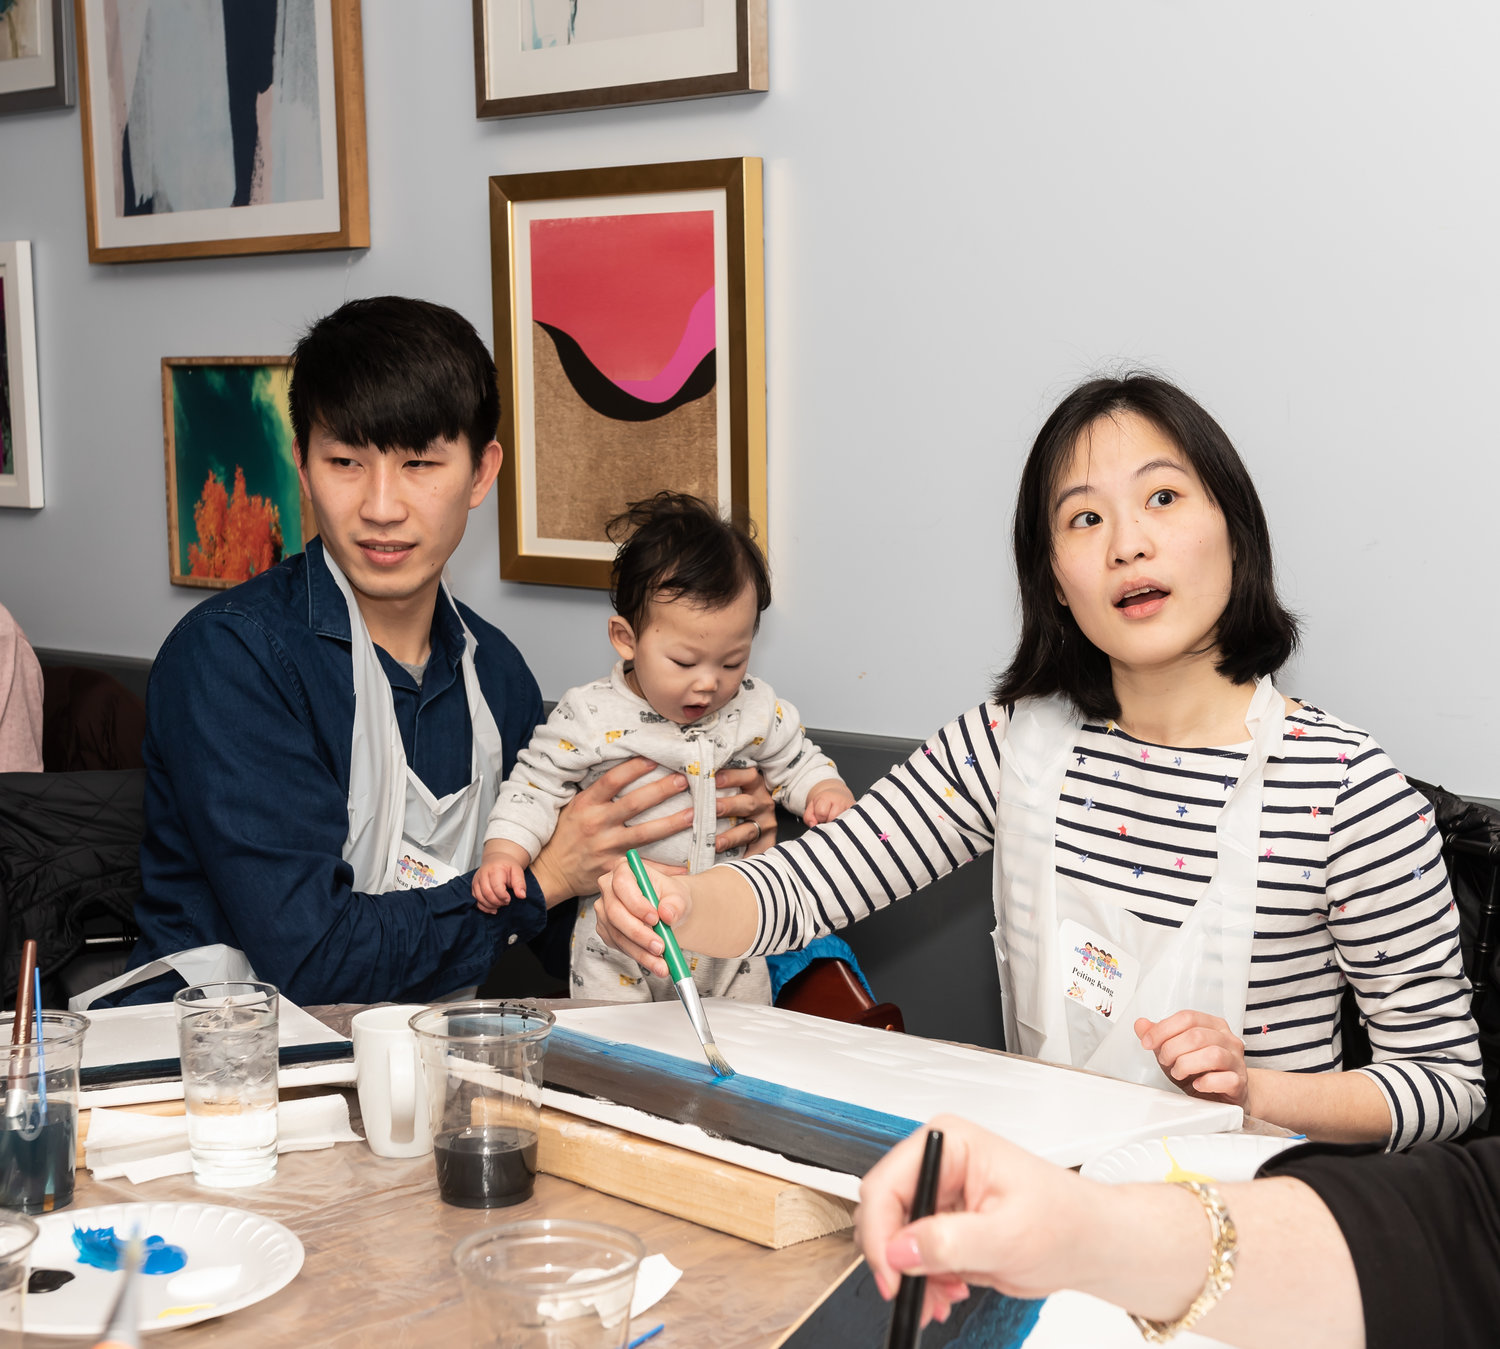 Sean and Peiting Kang brought their 10-month-old, Ryan, to the paint night to give him an early lesson in the arts.